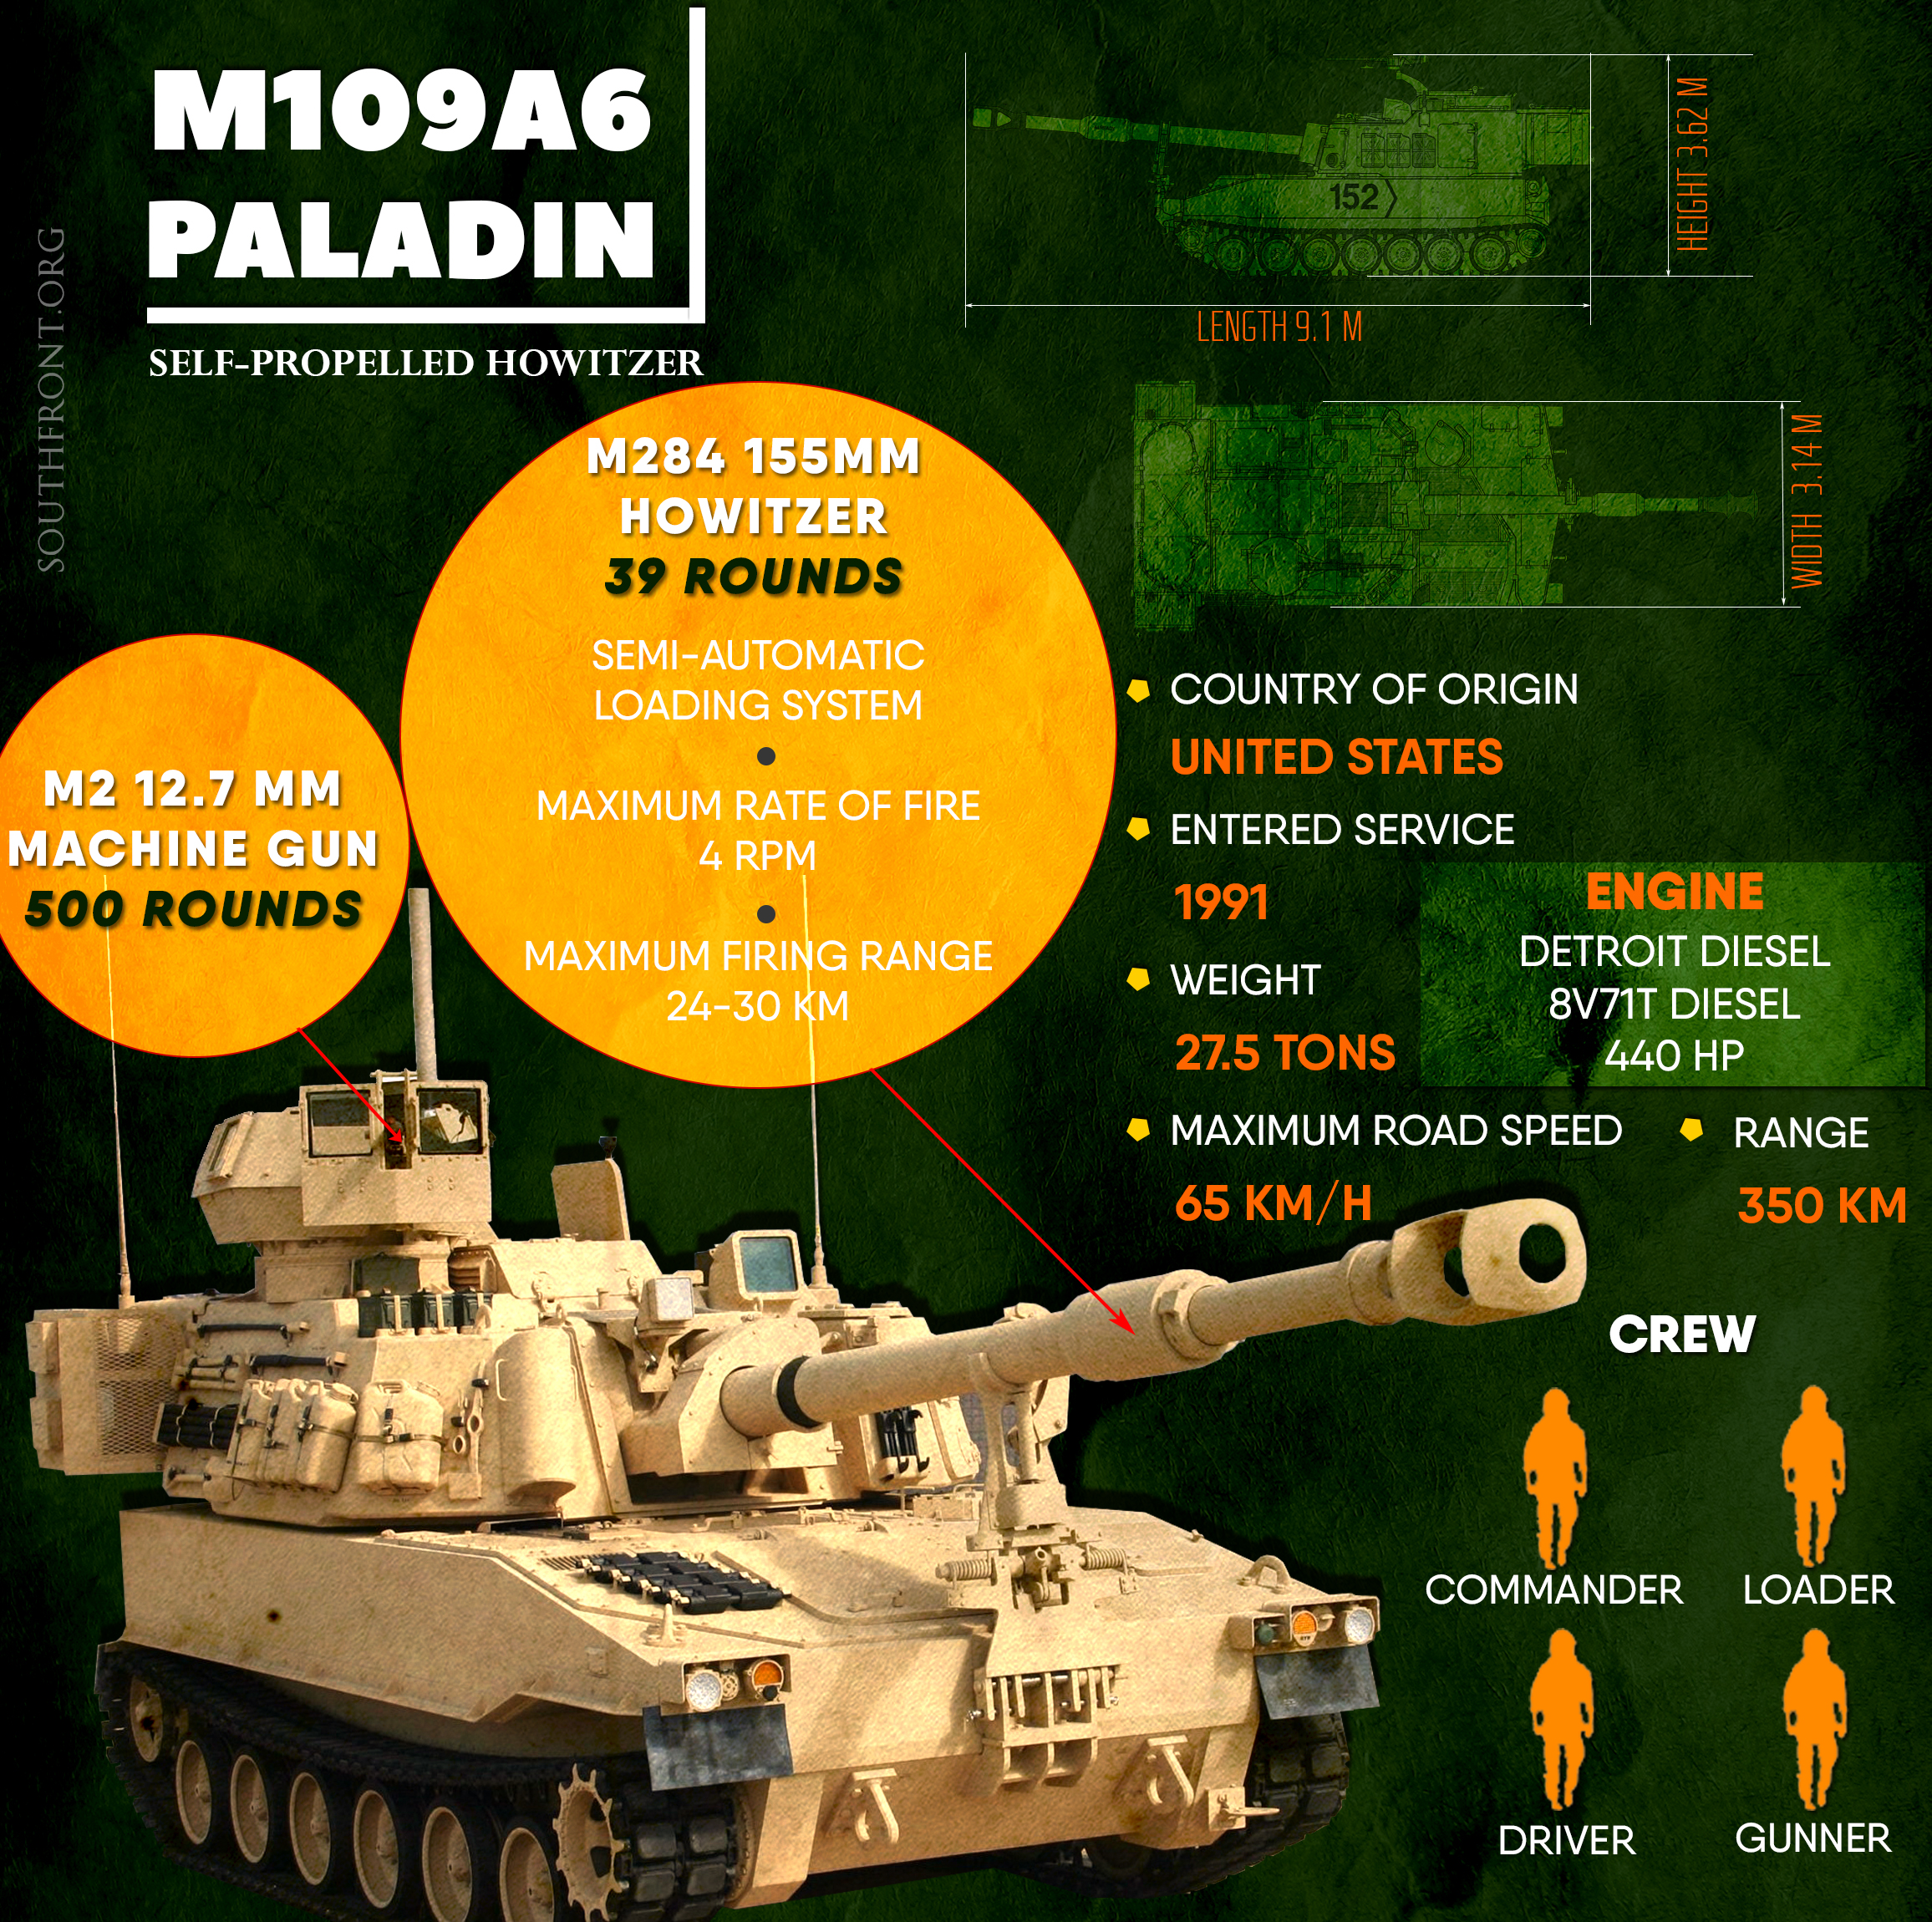 M109A6 Paladin Self-Propelled Howitzer (Infographics)